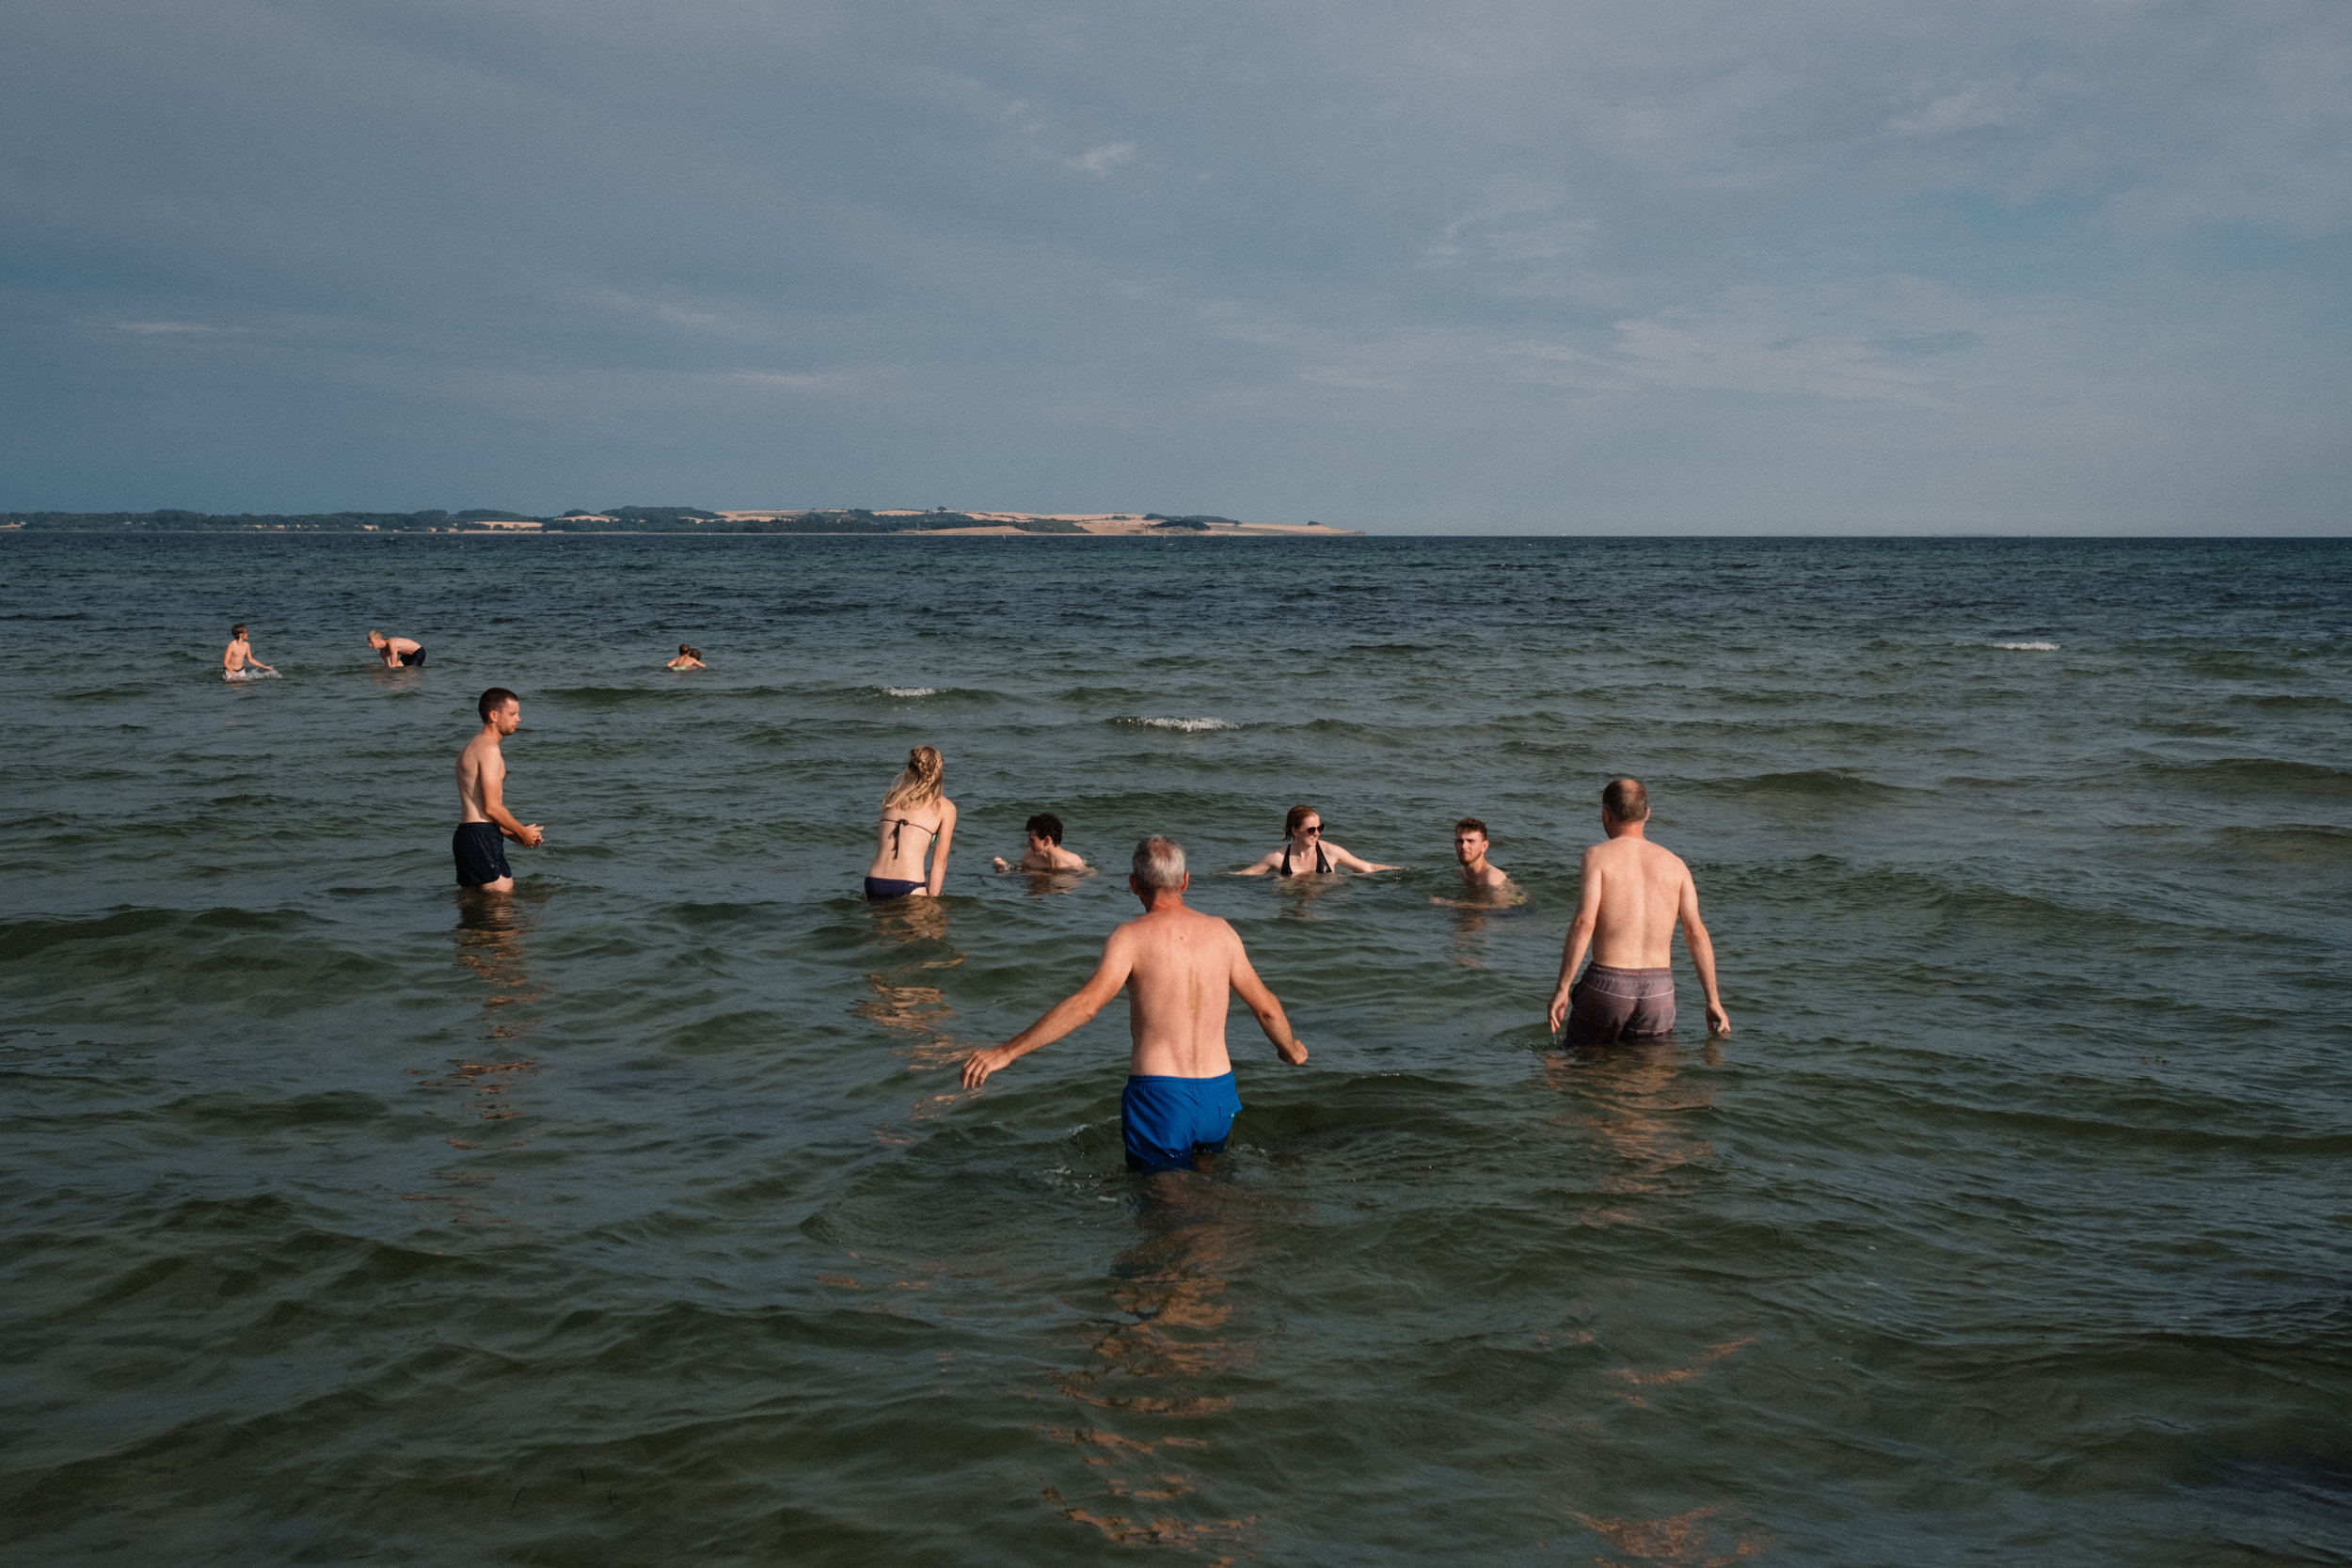 Simon's family joined us for a swim and evening picnic at the beach in Skæring.